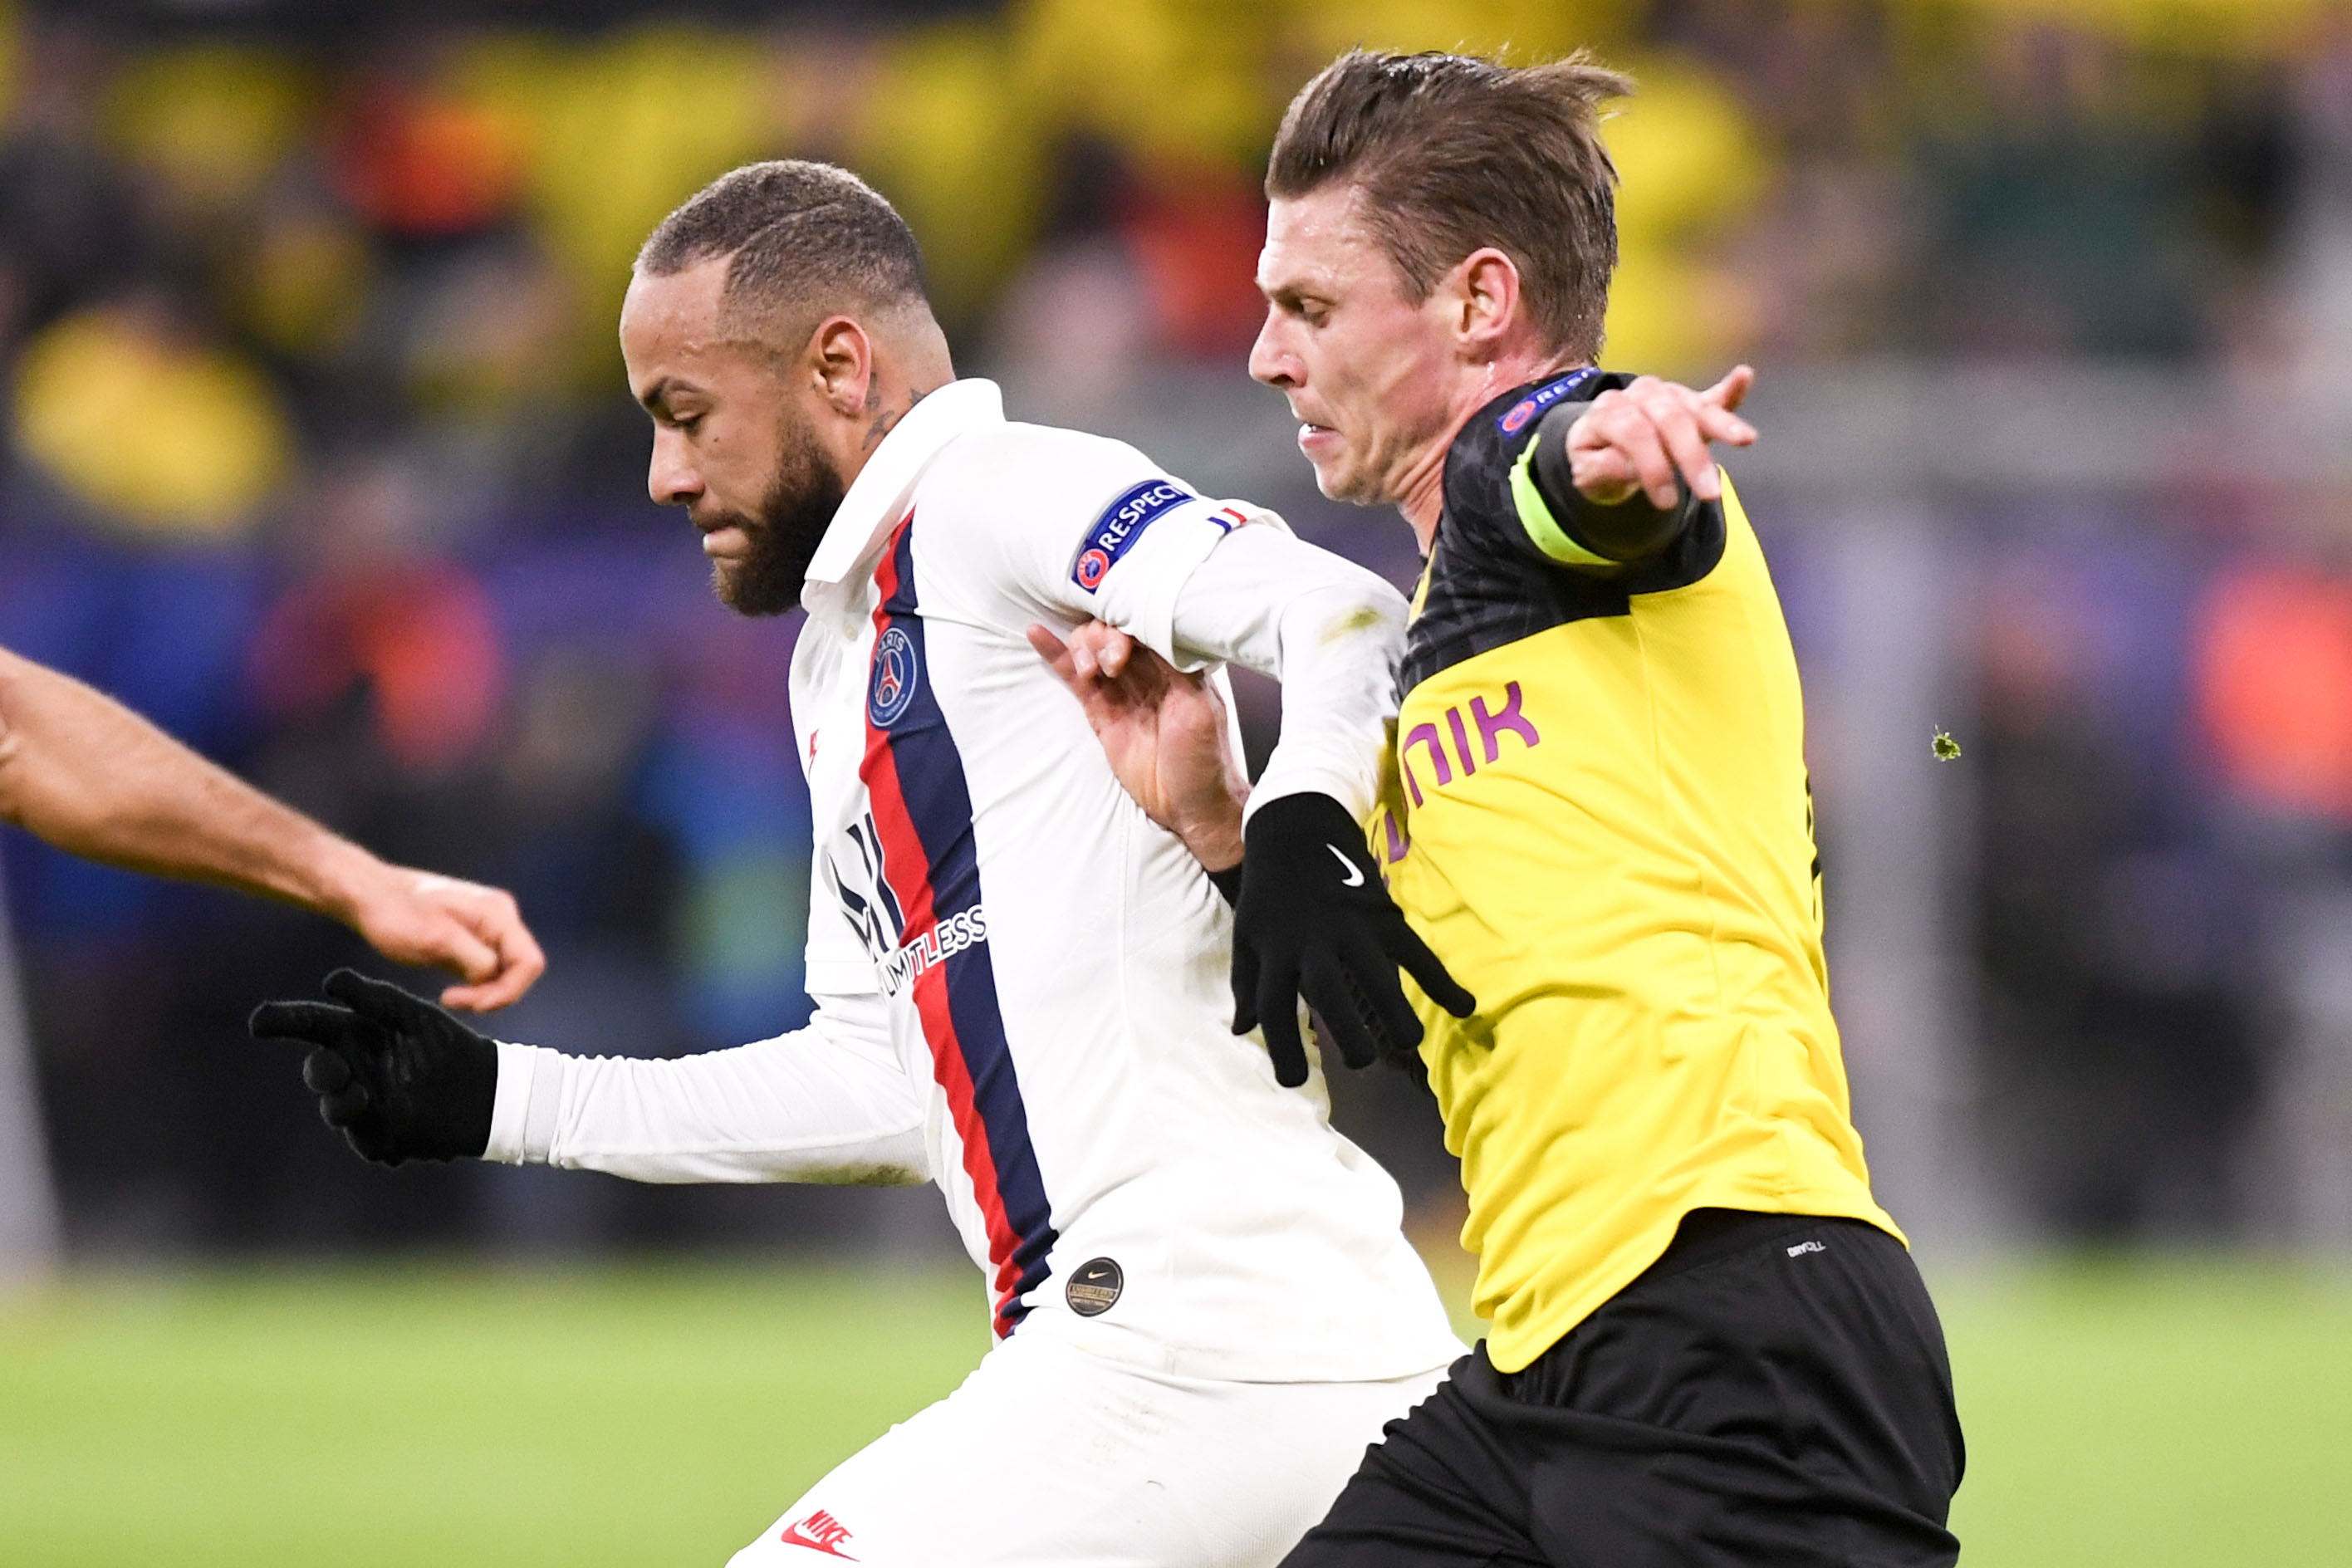 Football - Ligue des champions - Paris SG-Dortmund : le huis clos de tous les dangers